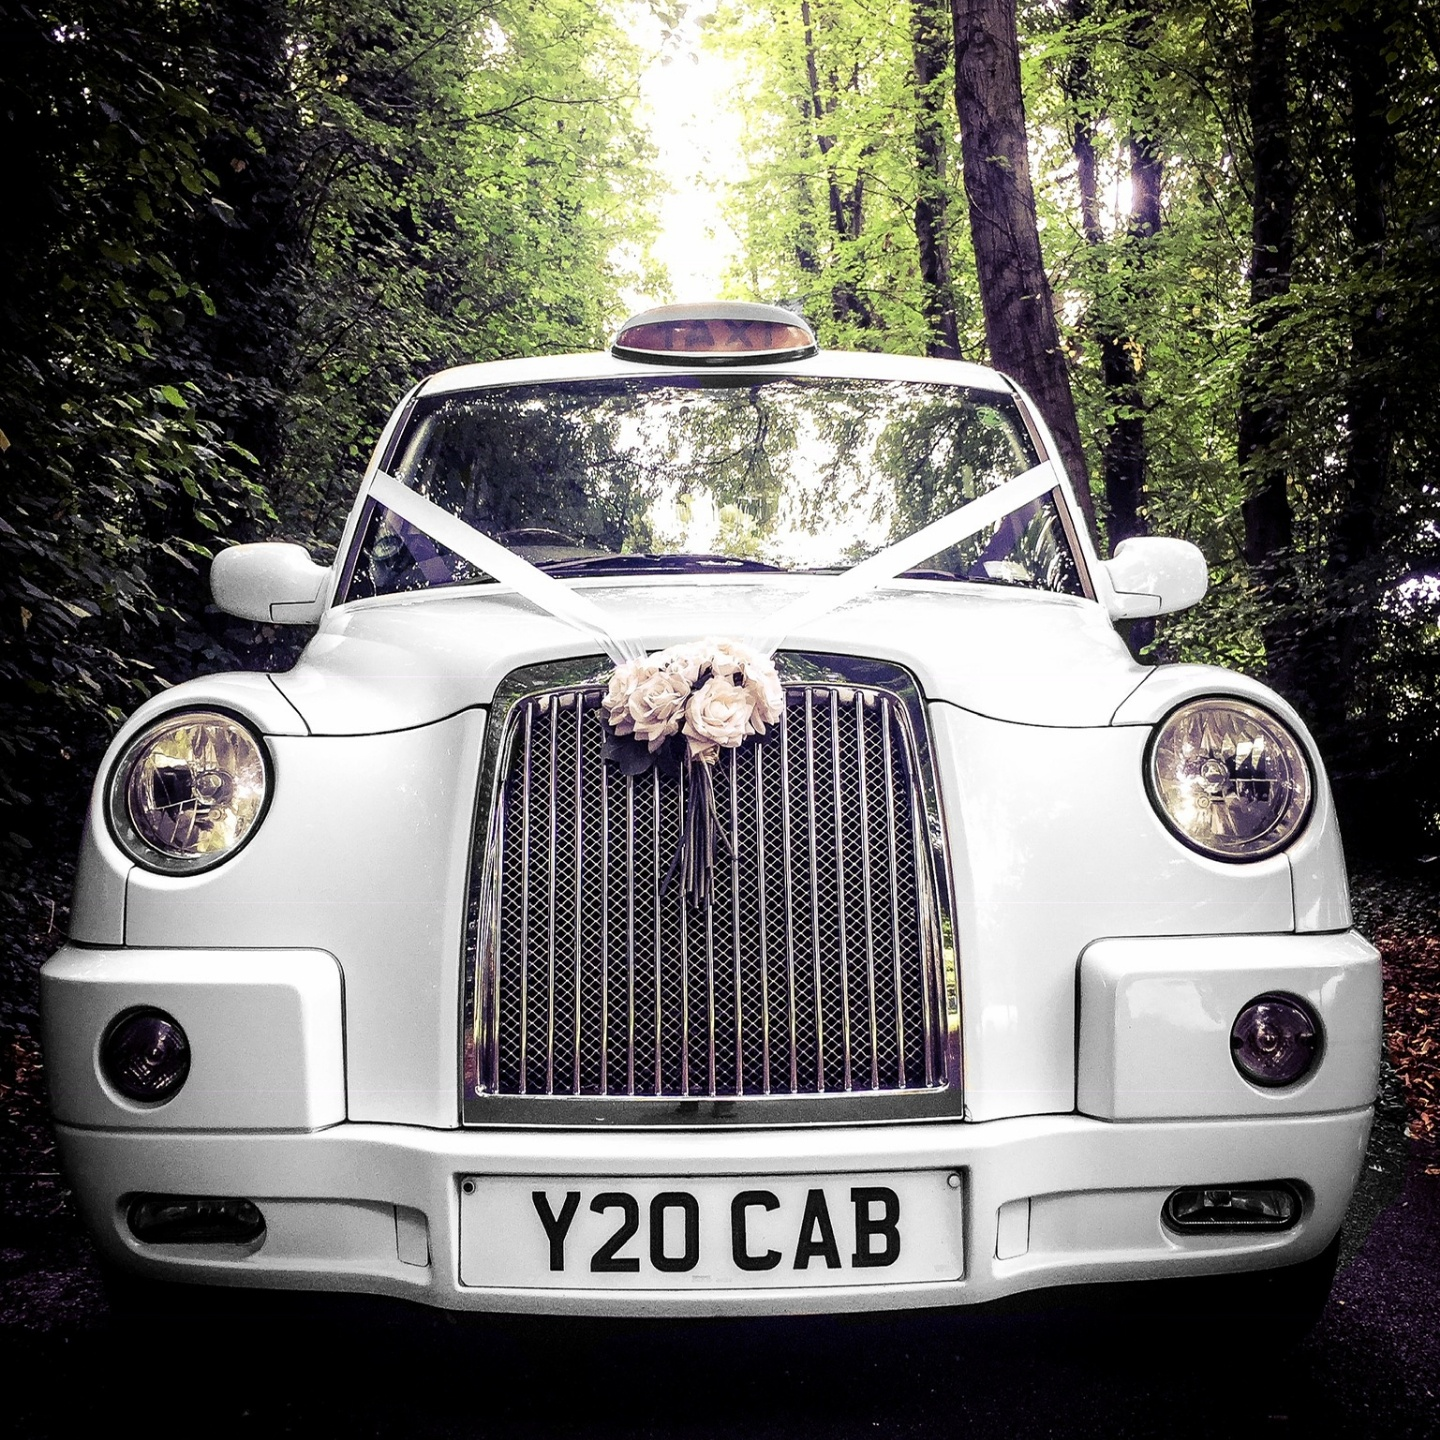 Hale barns, cheshire wedding taxi